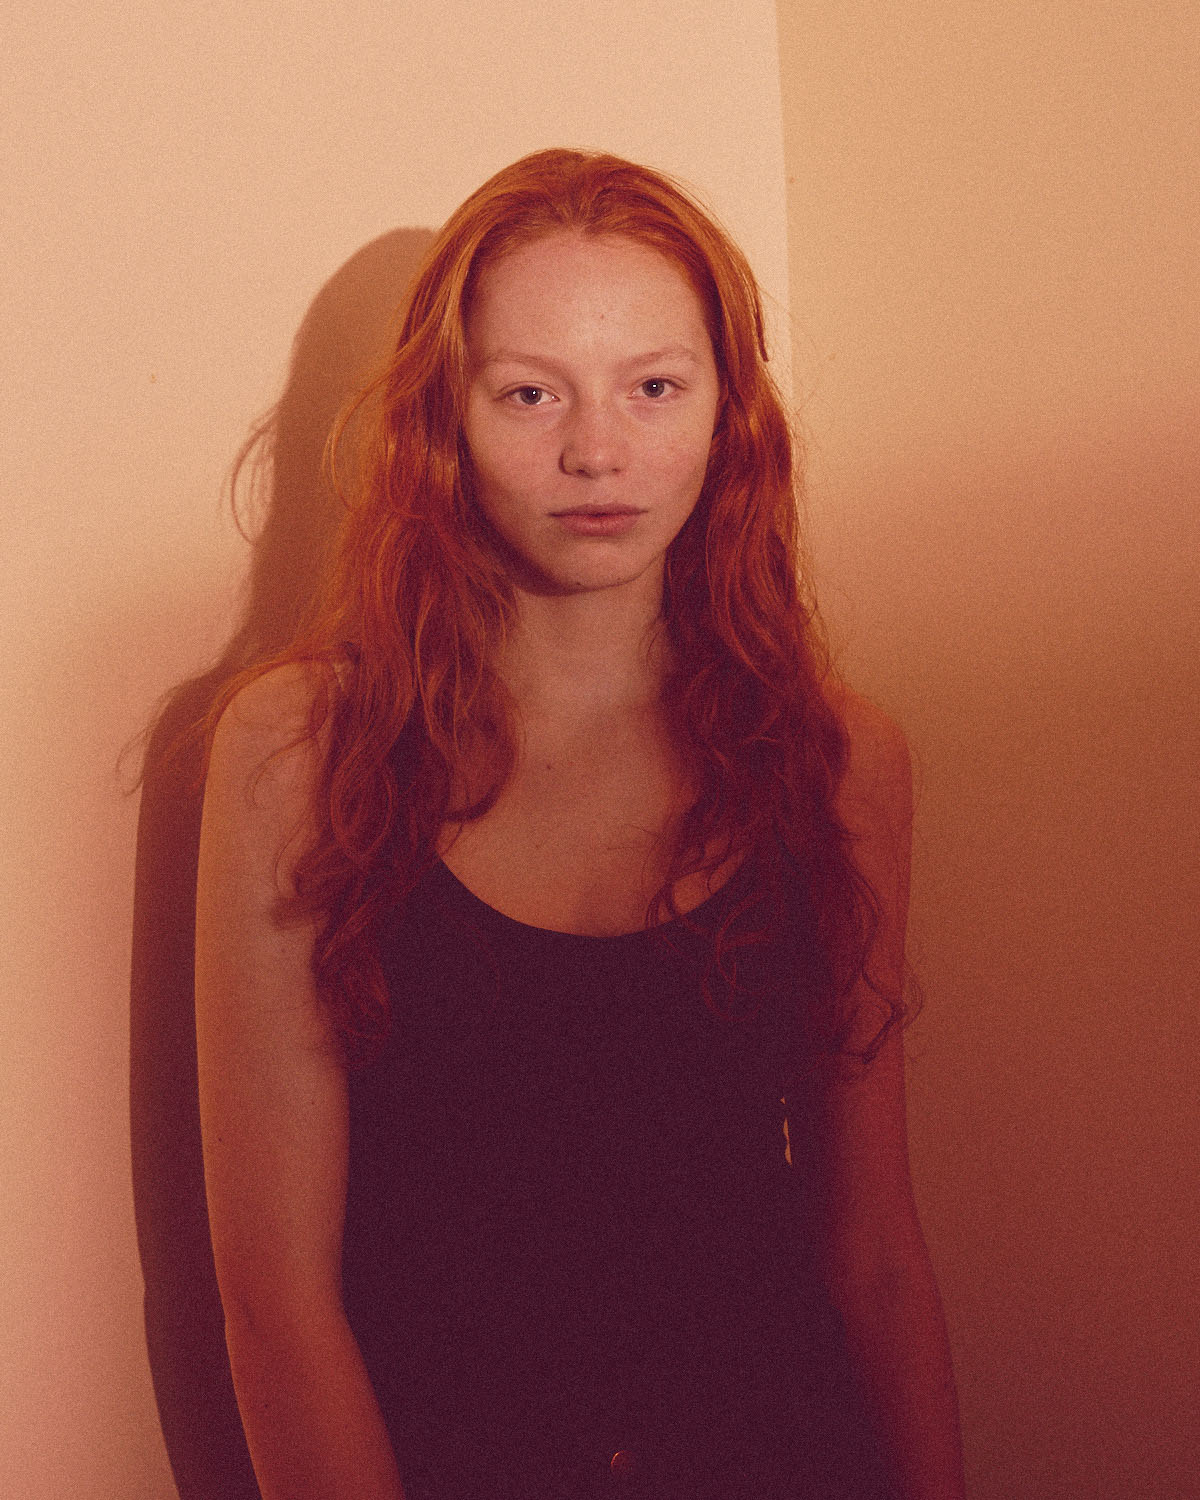 Girl, ginger hair, beige wall by portrait photographer Tim Cole